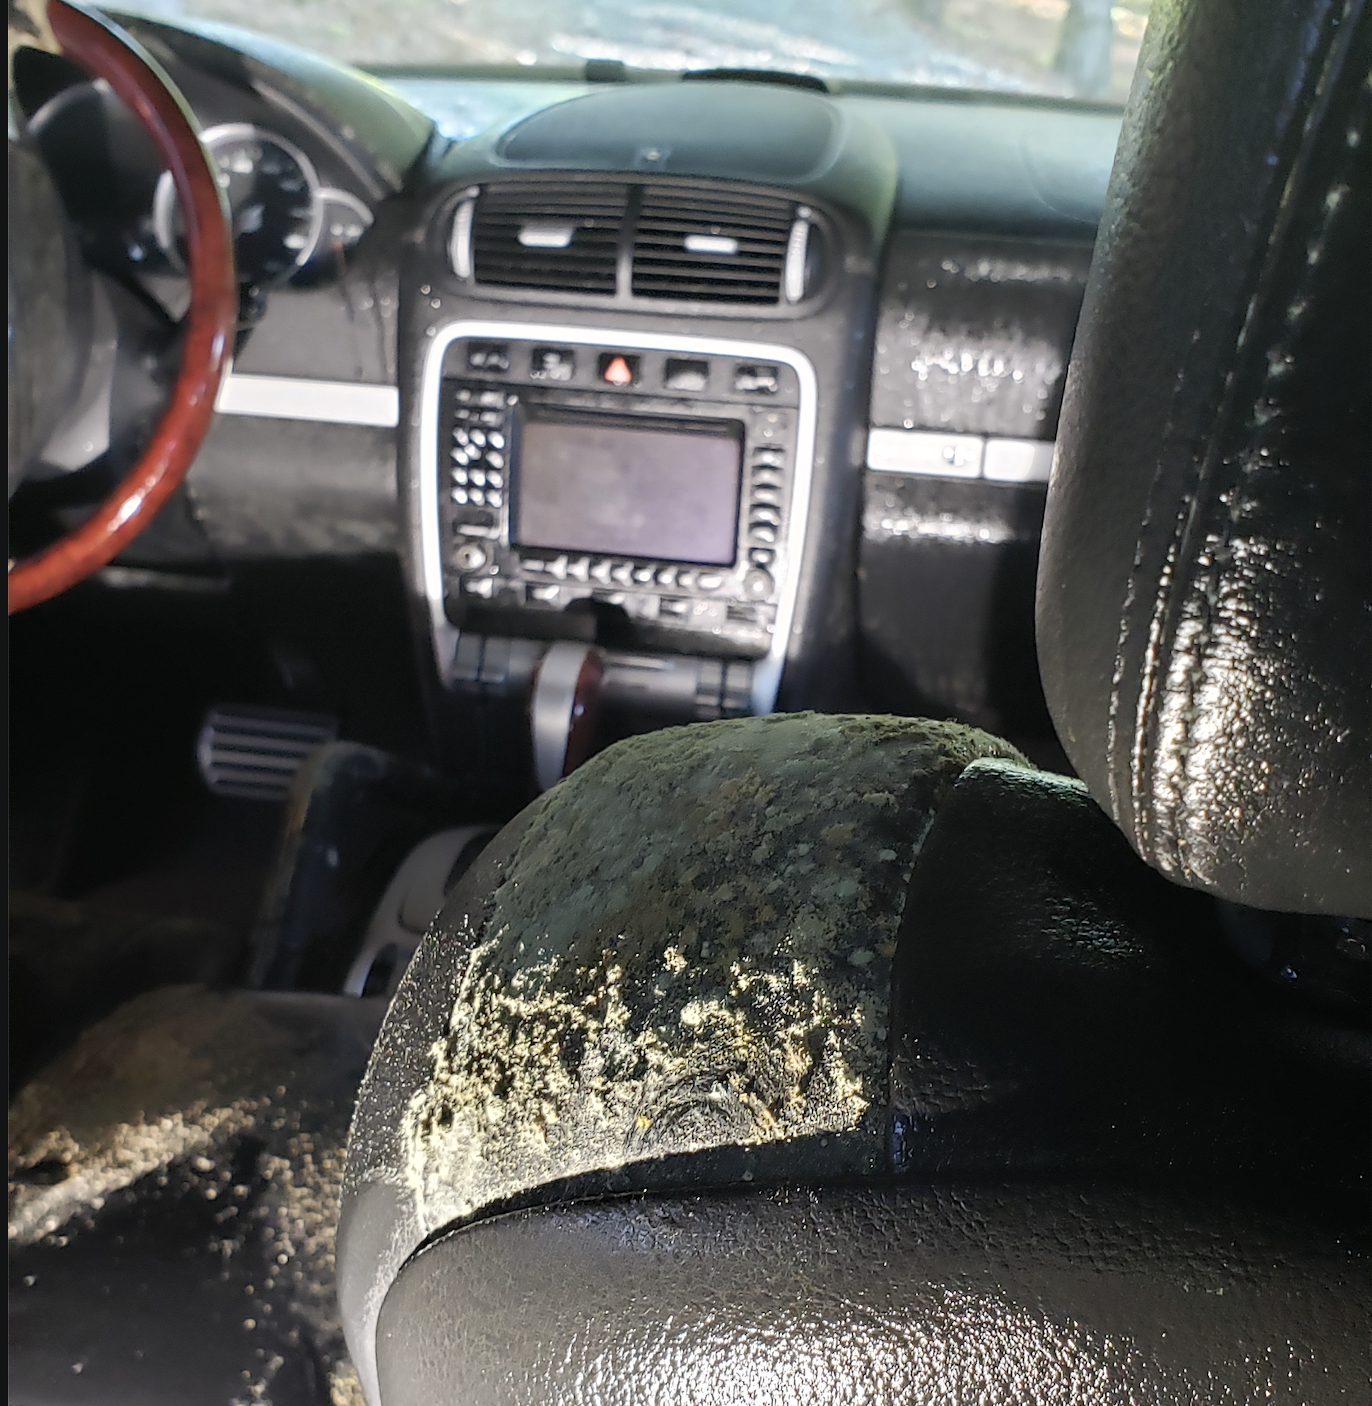 Automotive Mold Removal - What You Need to Know